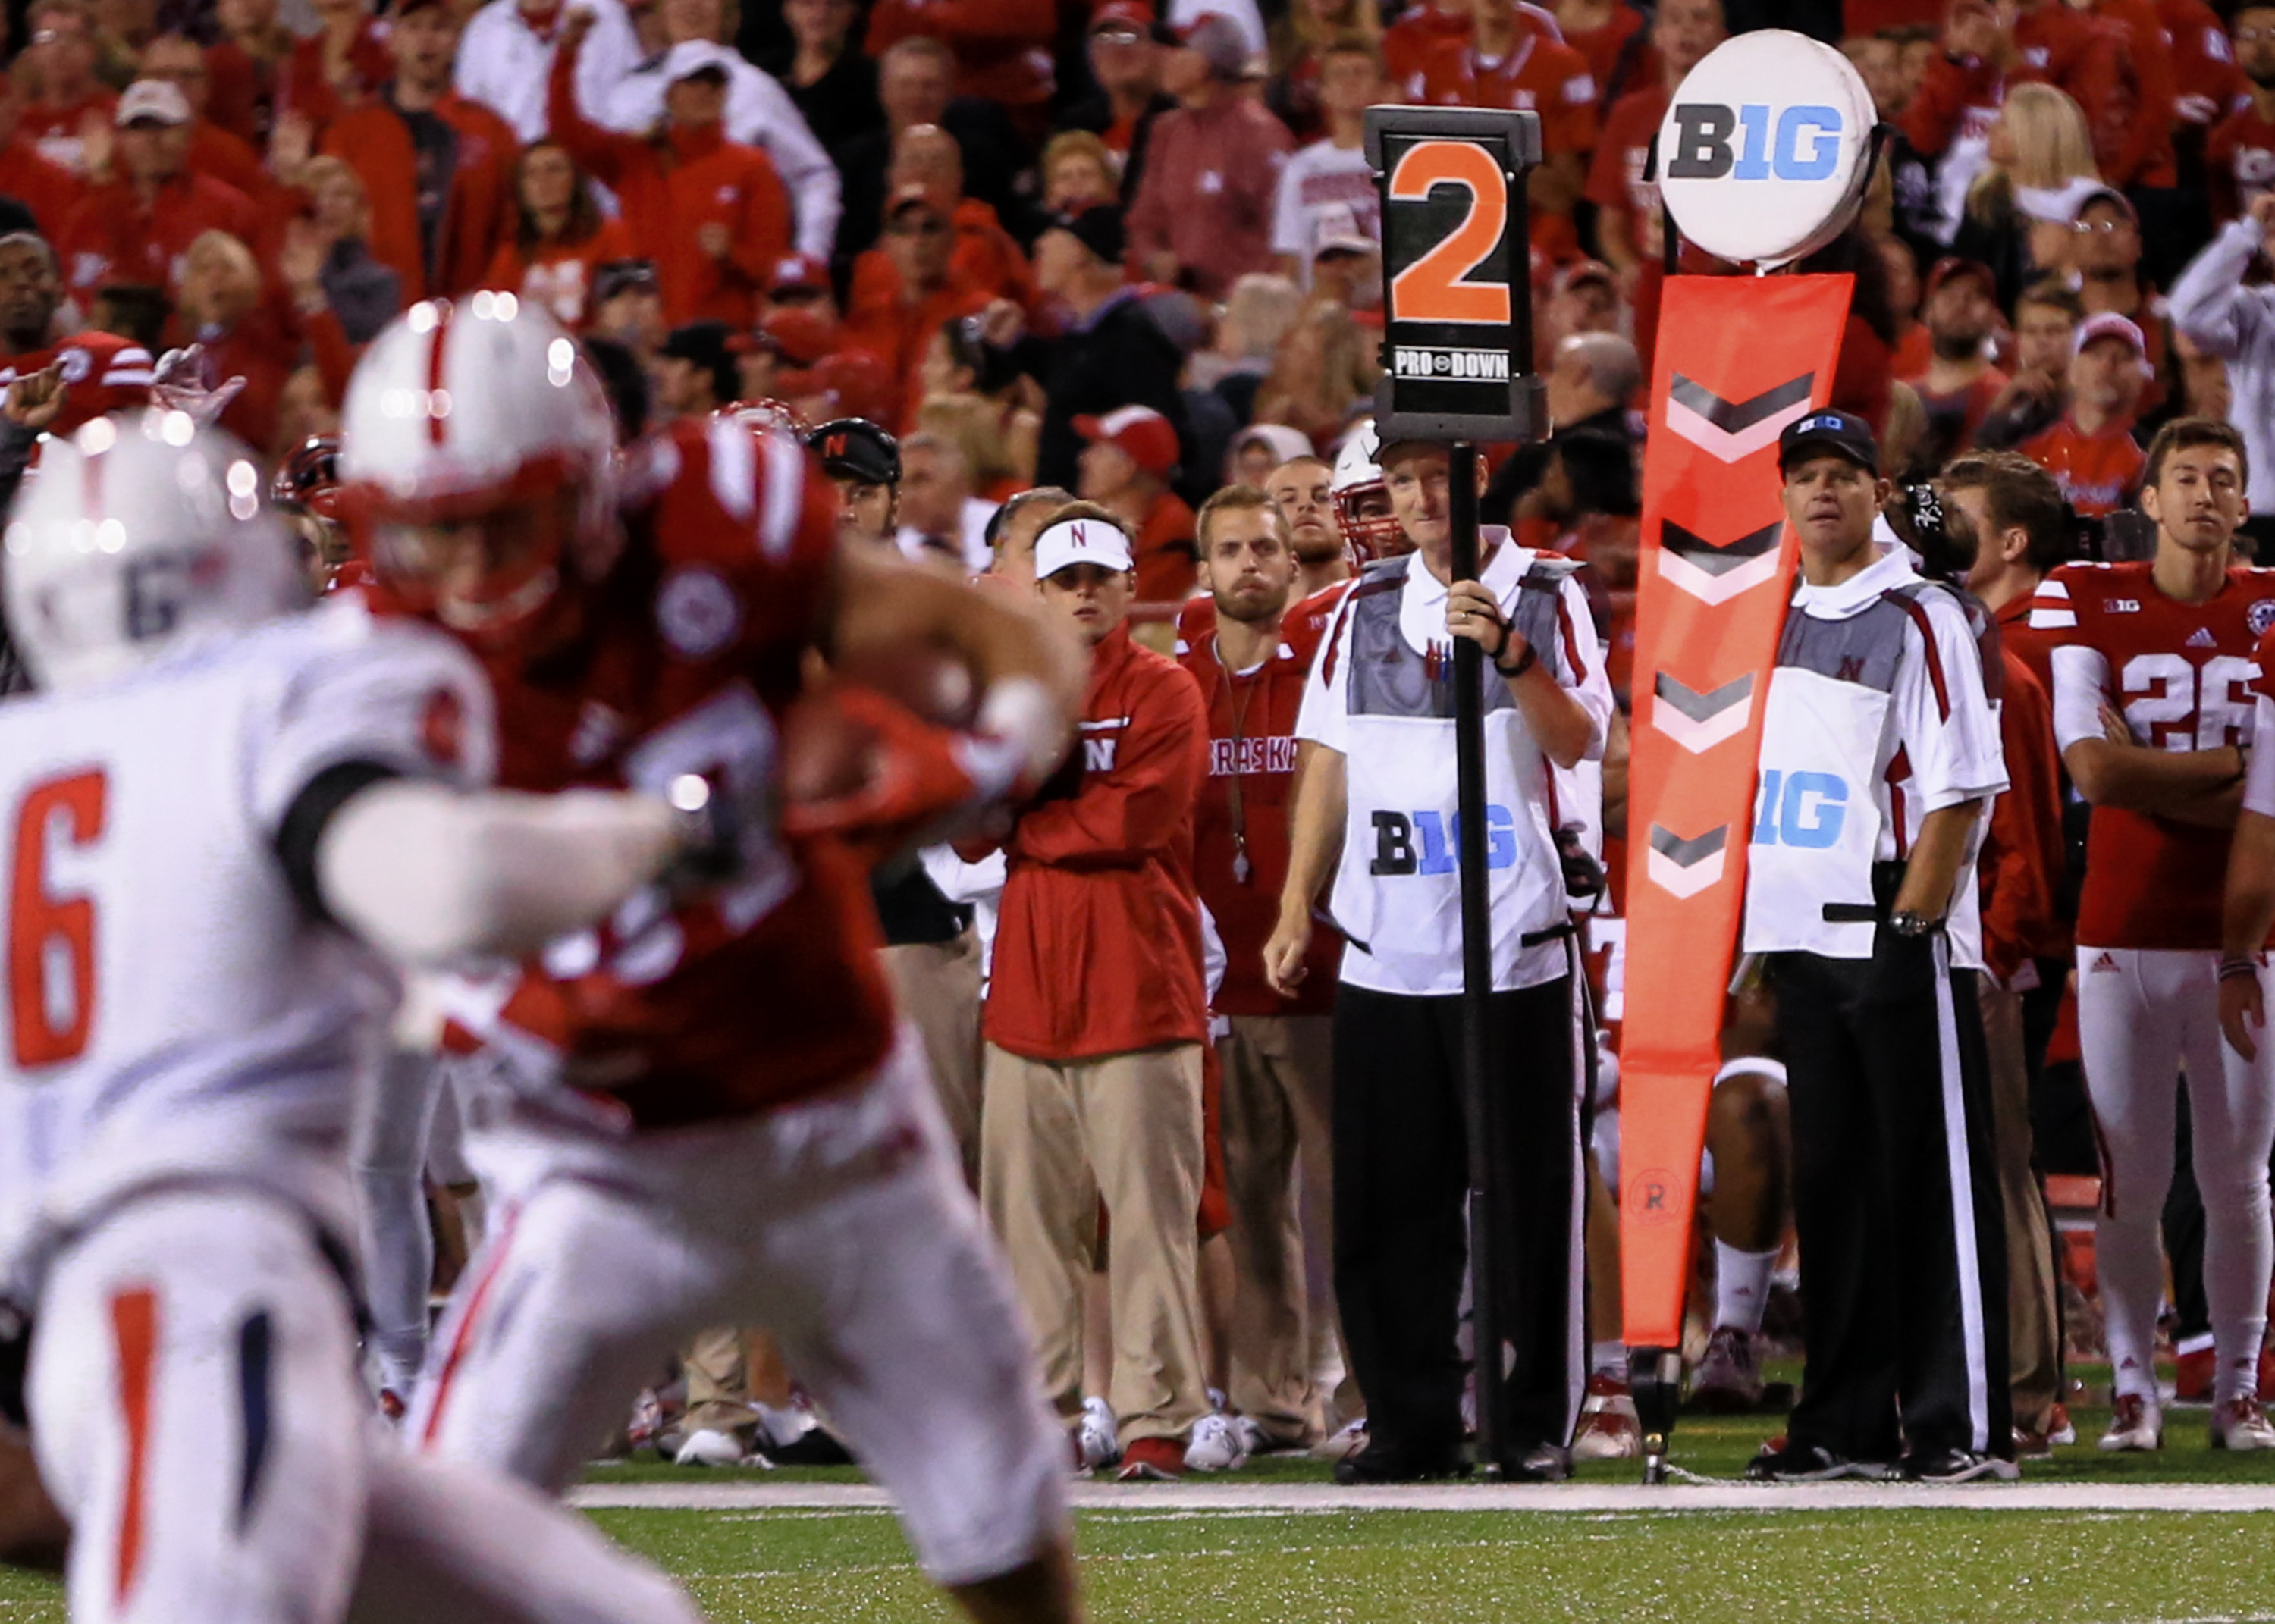 In this Sept. 12, 2015 photo, Big Ten chain gang members Greg Maschman, second right, and Mike Sterns, right, work on the sidelines  in Lincoln, Neb., during an NCAA college football game between Nebraska and South Alabama. The men on the sideline crew, b